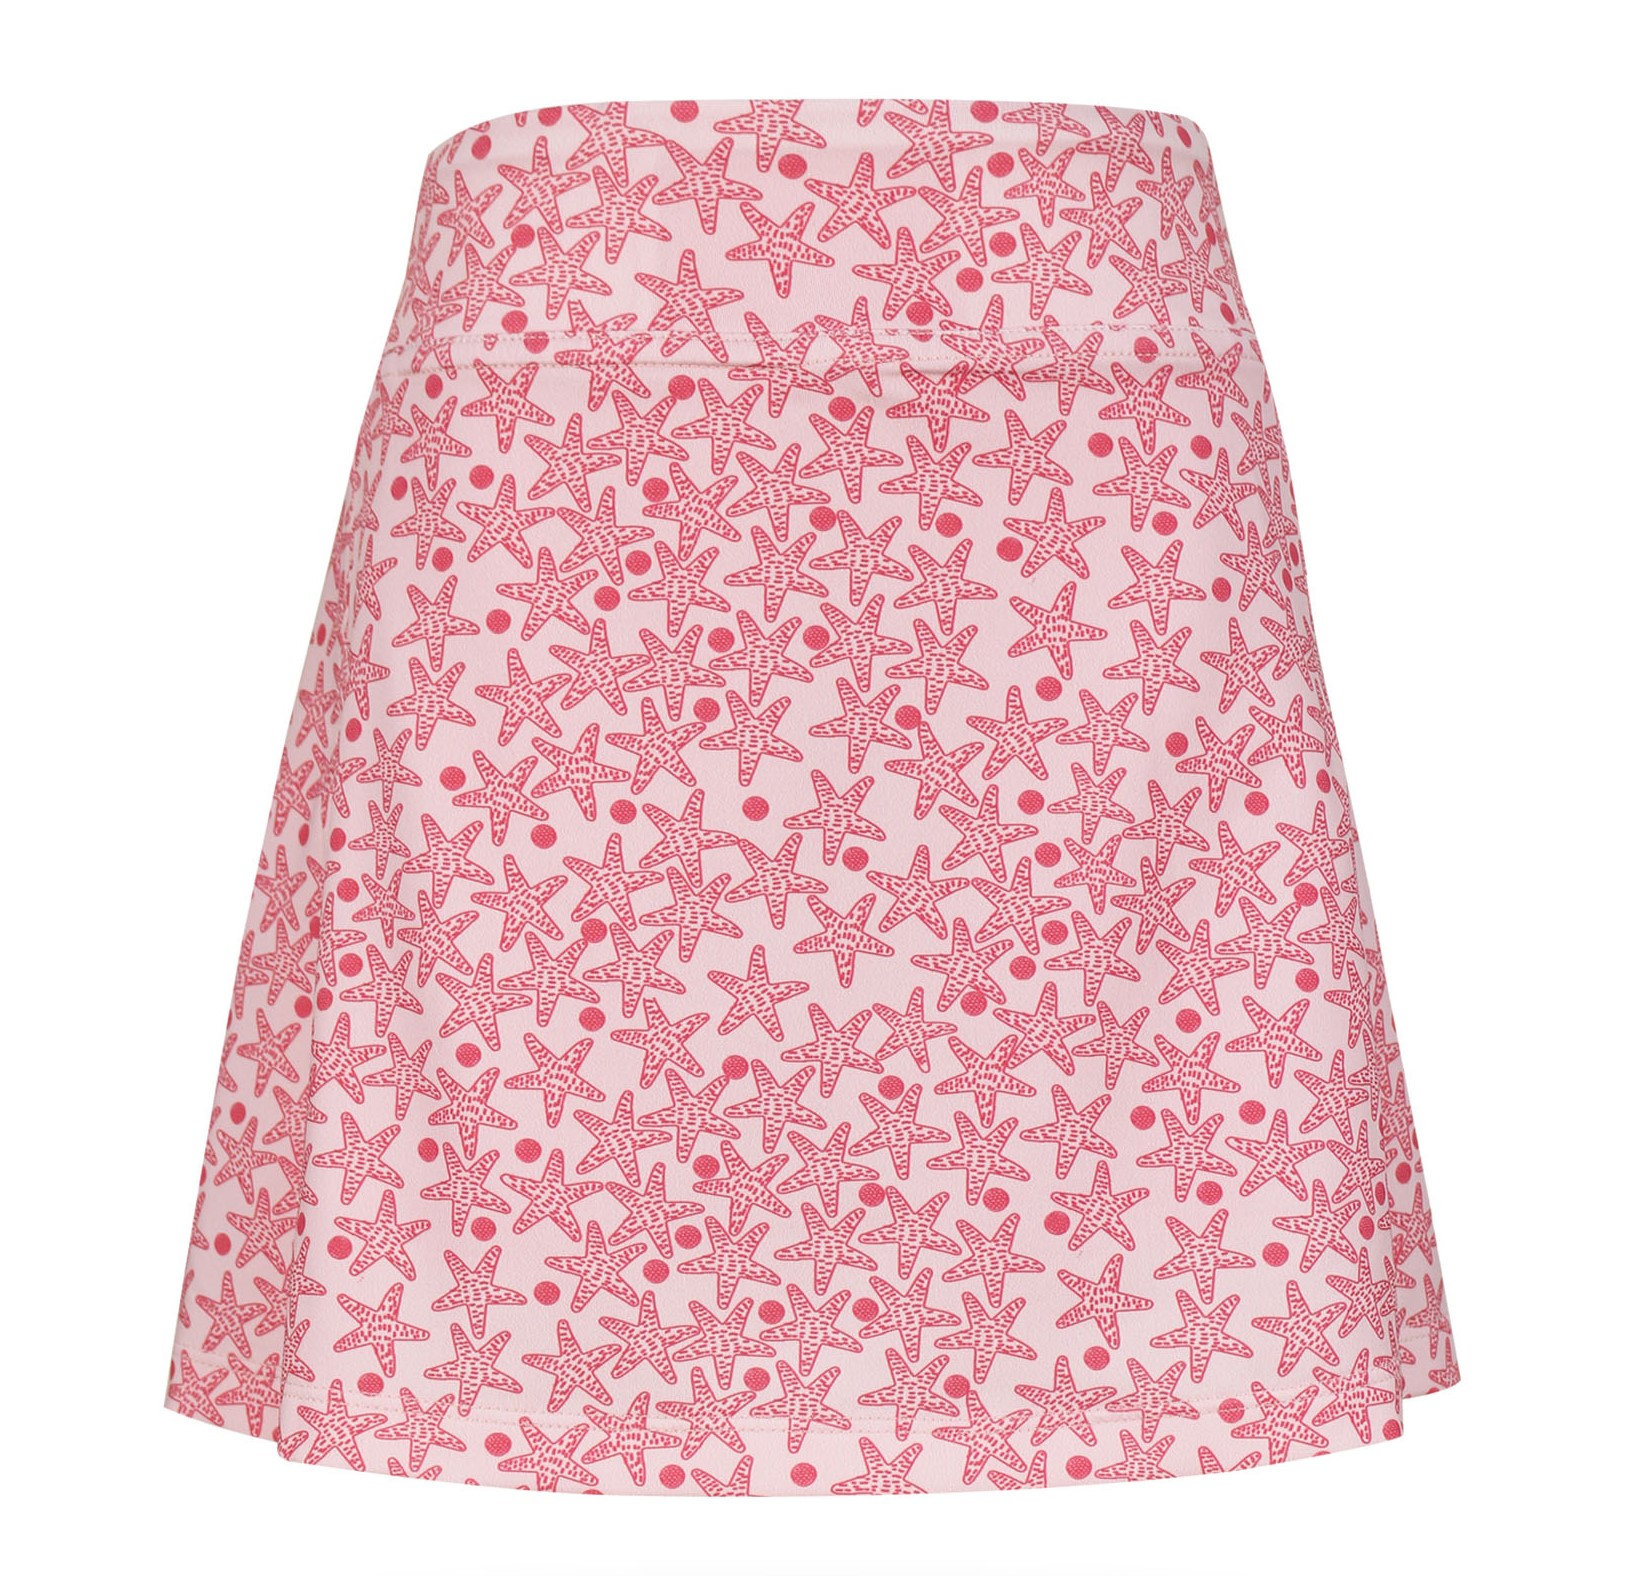 Jules Knit Peekaboo Pleated Girls's Golf & Tennis Skort in StarsInTheRough Print